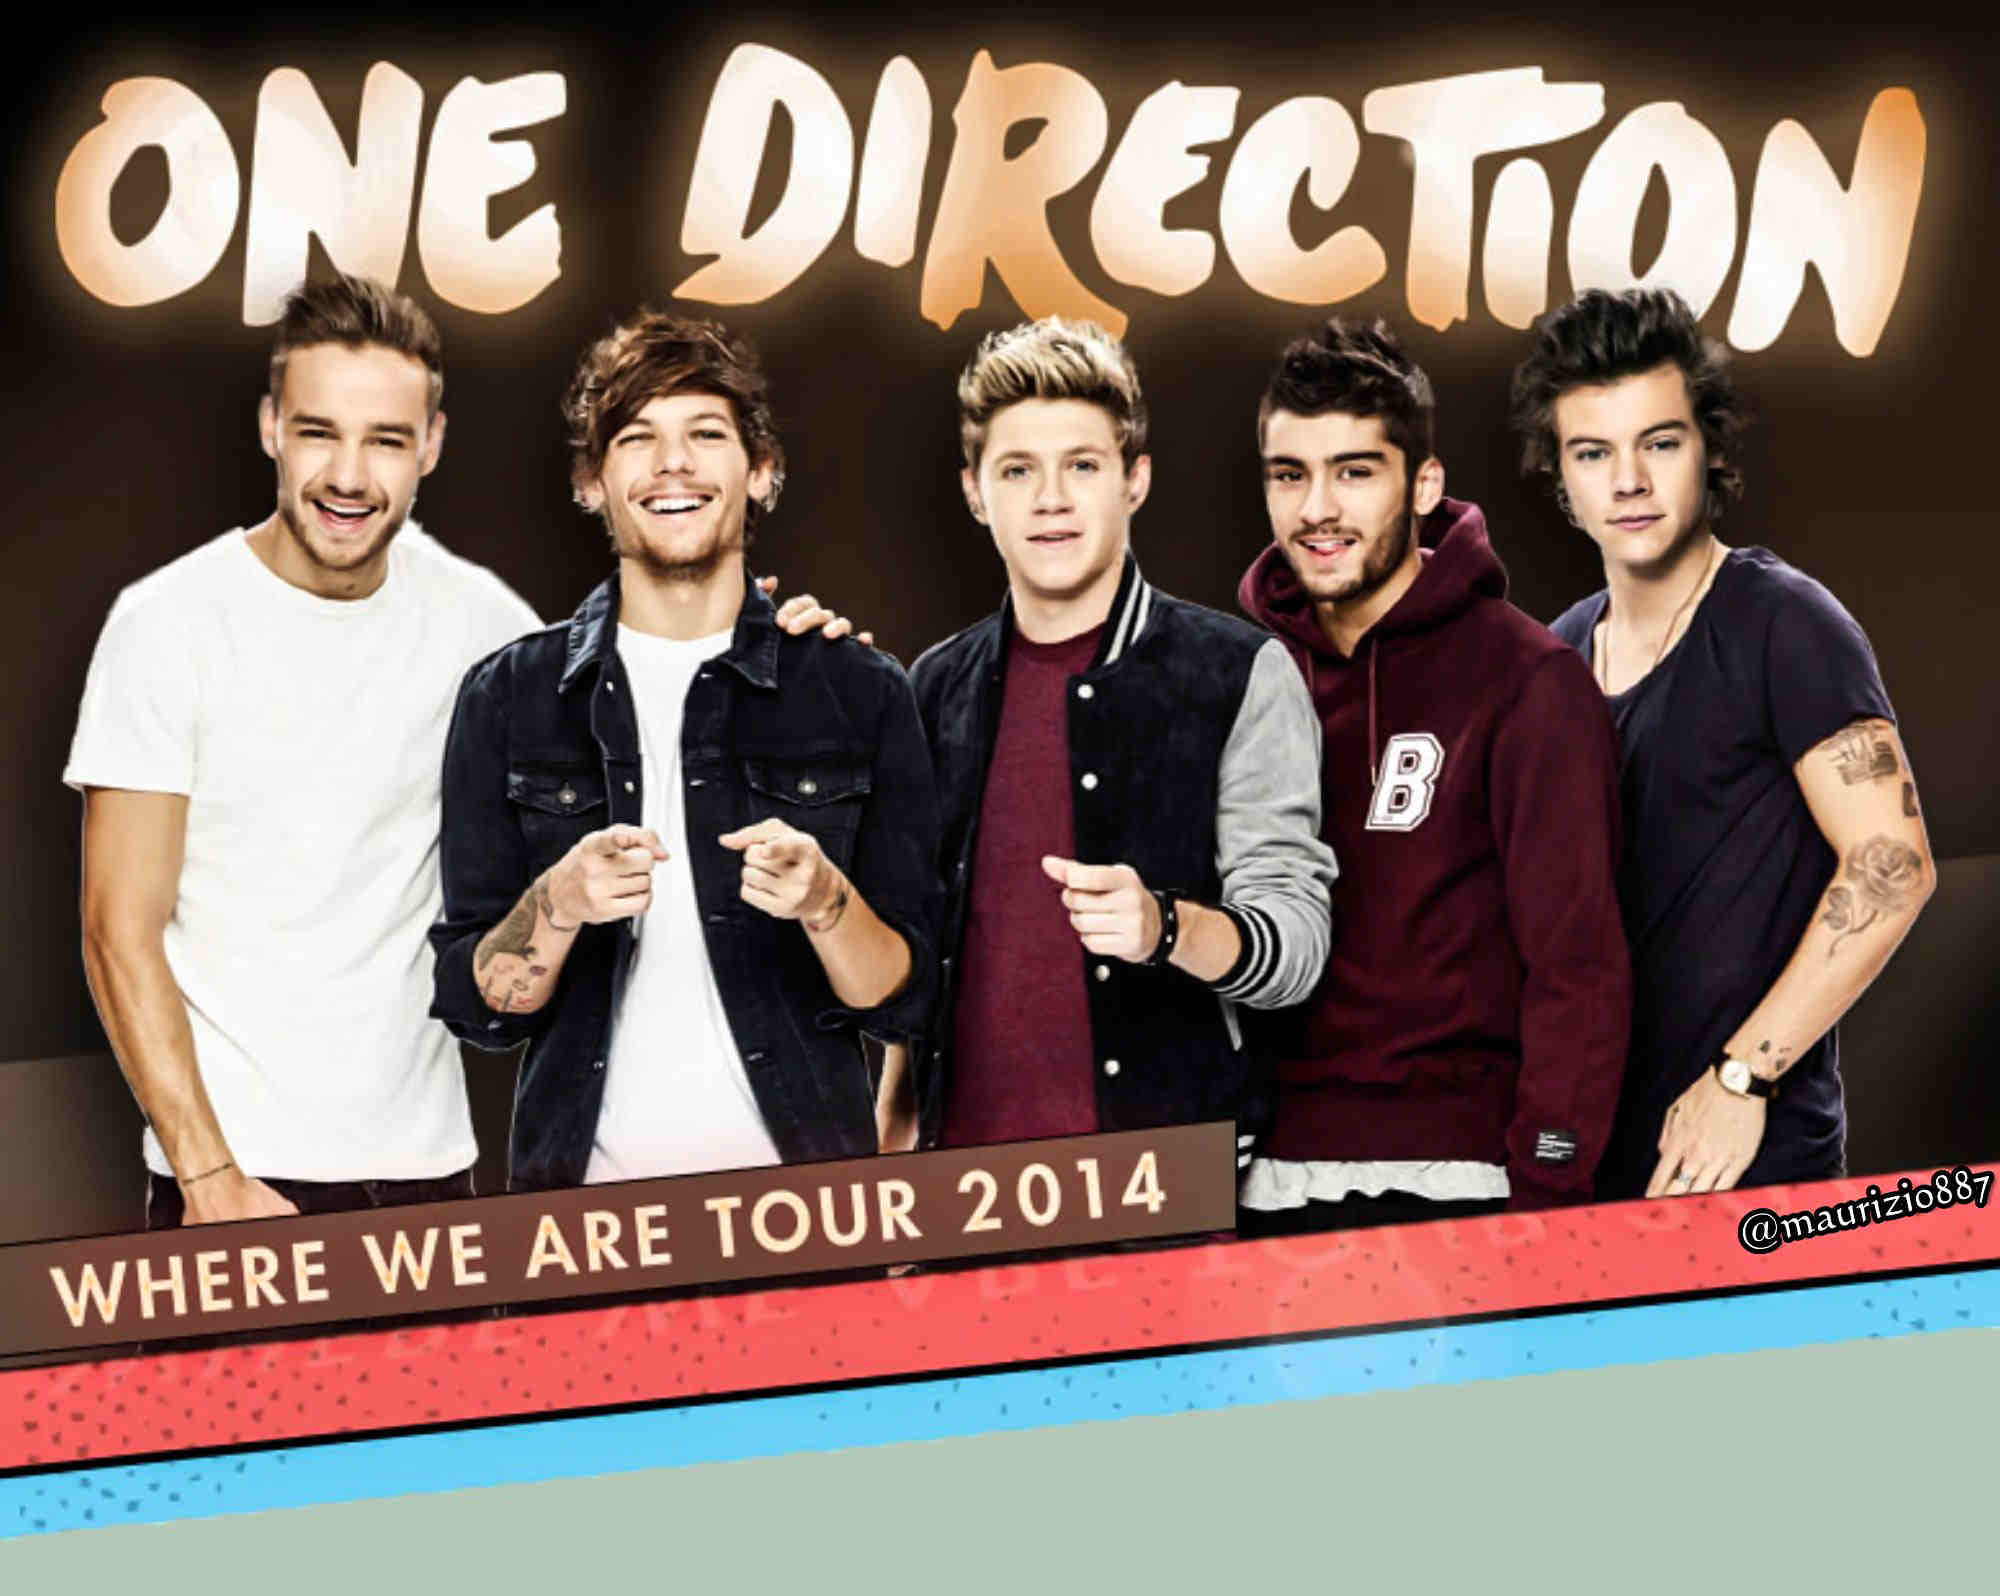 One direction concert dates in Perth